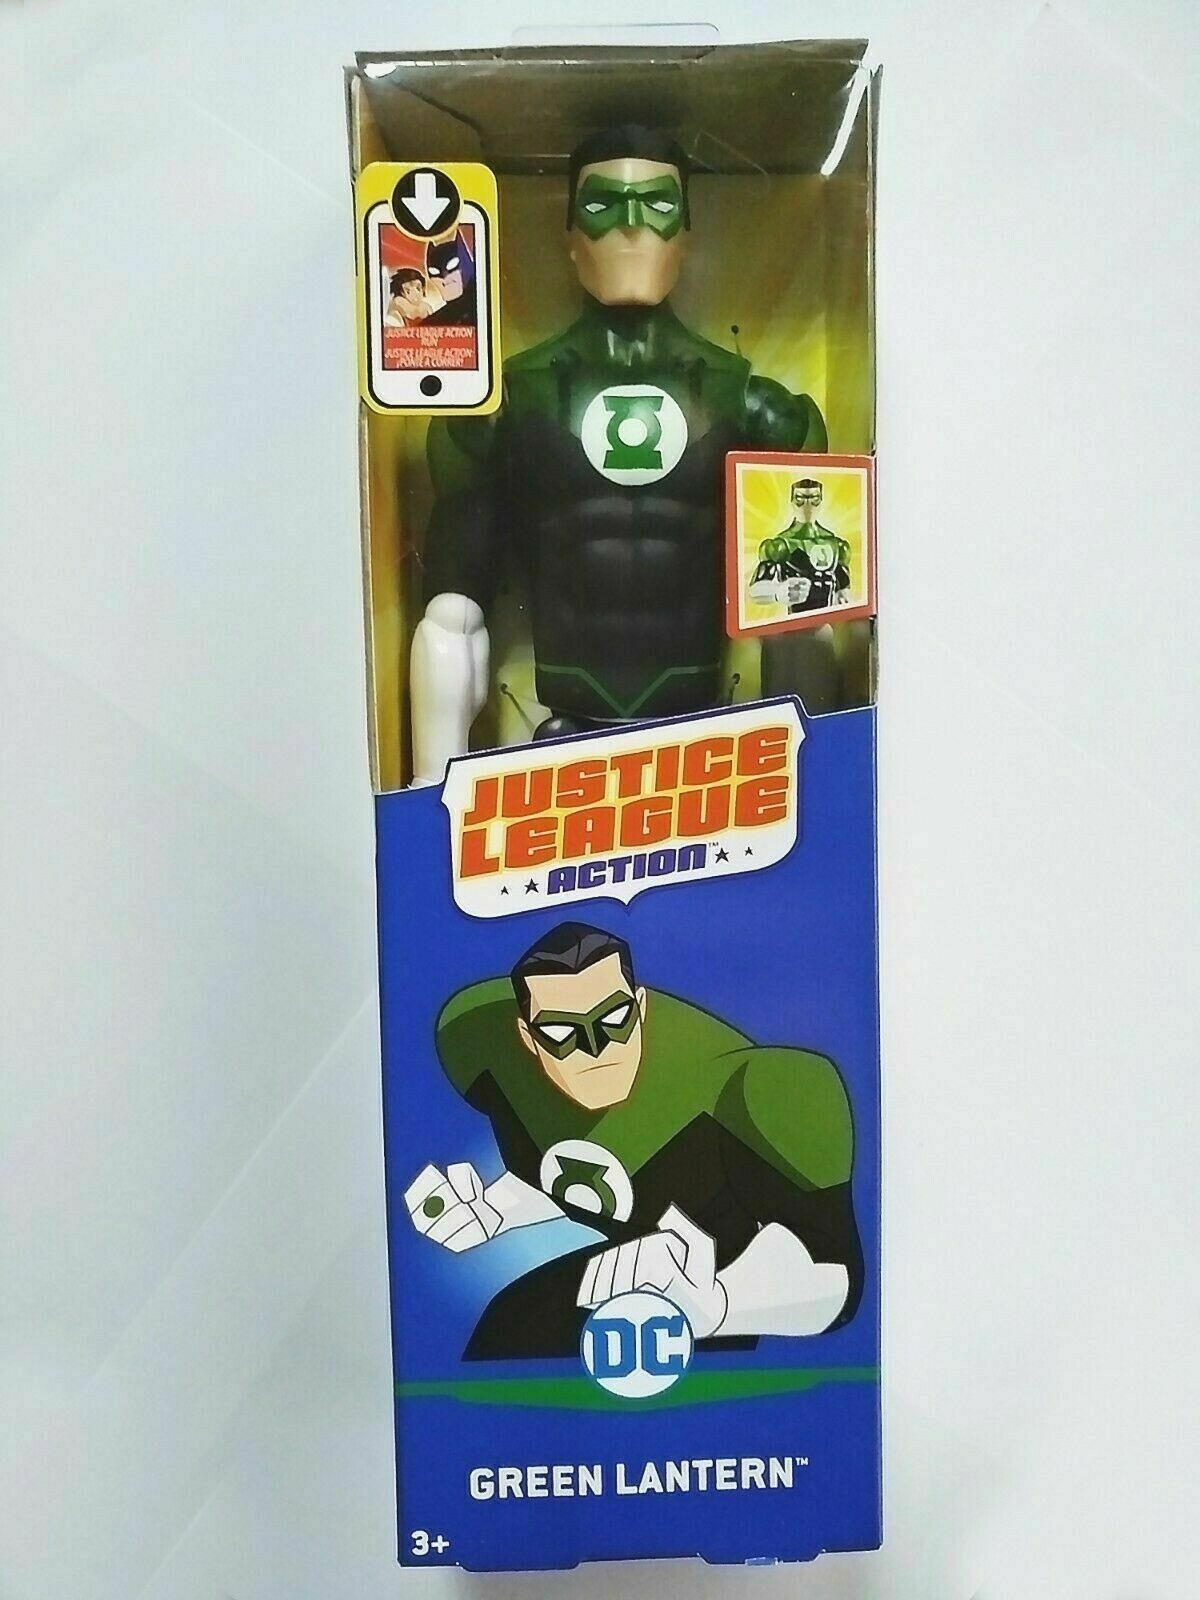 Grün Lantern Justice League Action Figure 12 12 12 inch - Mattel - Brand New c42ded